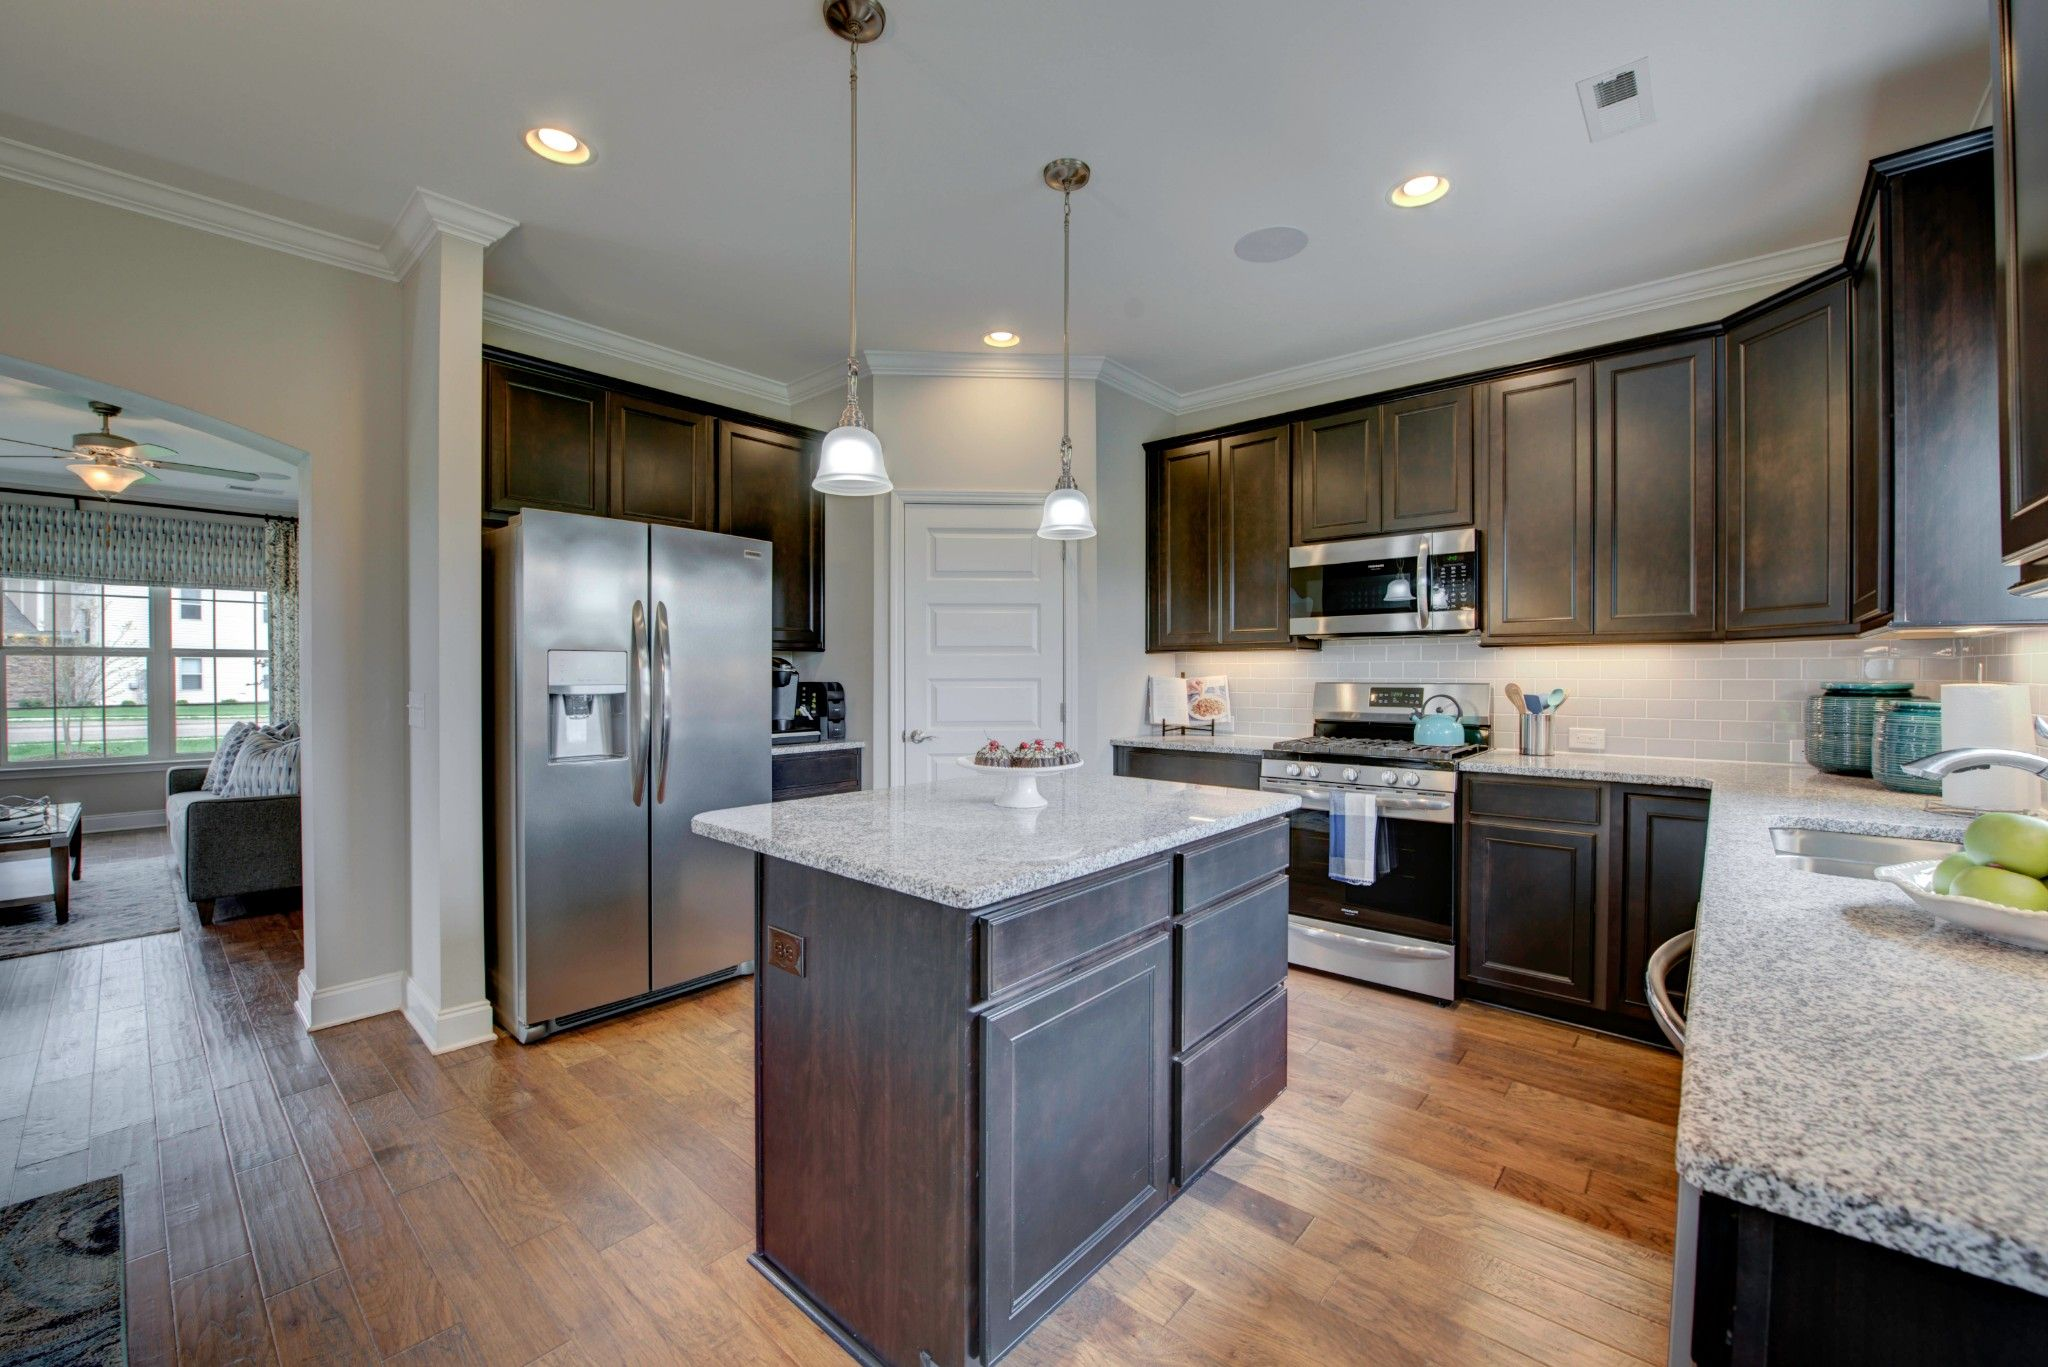 Kitchen featured in The Eliot By Goodall Homes in Owensboro, KY